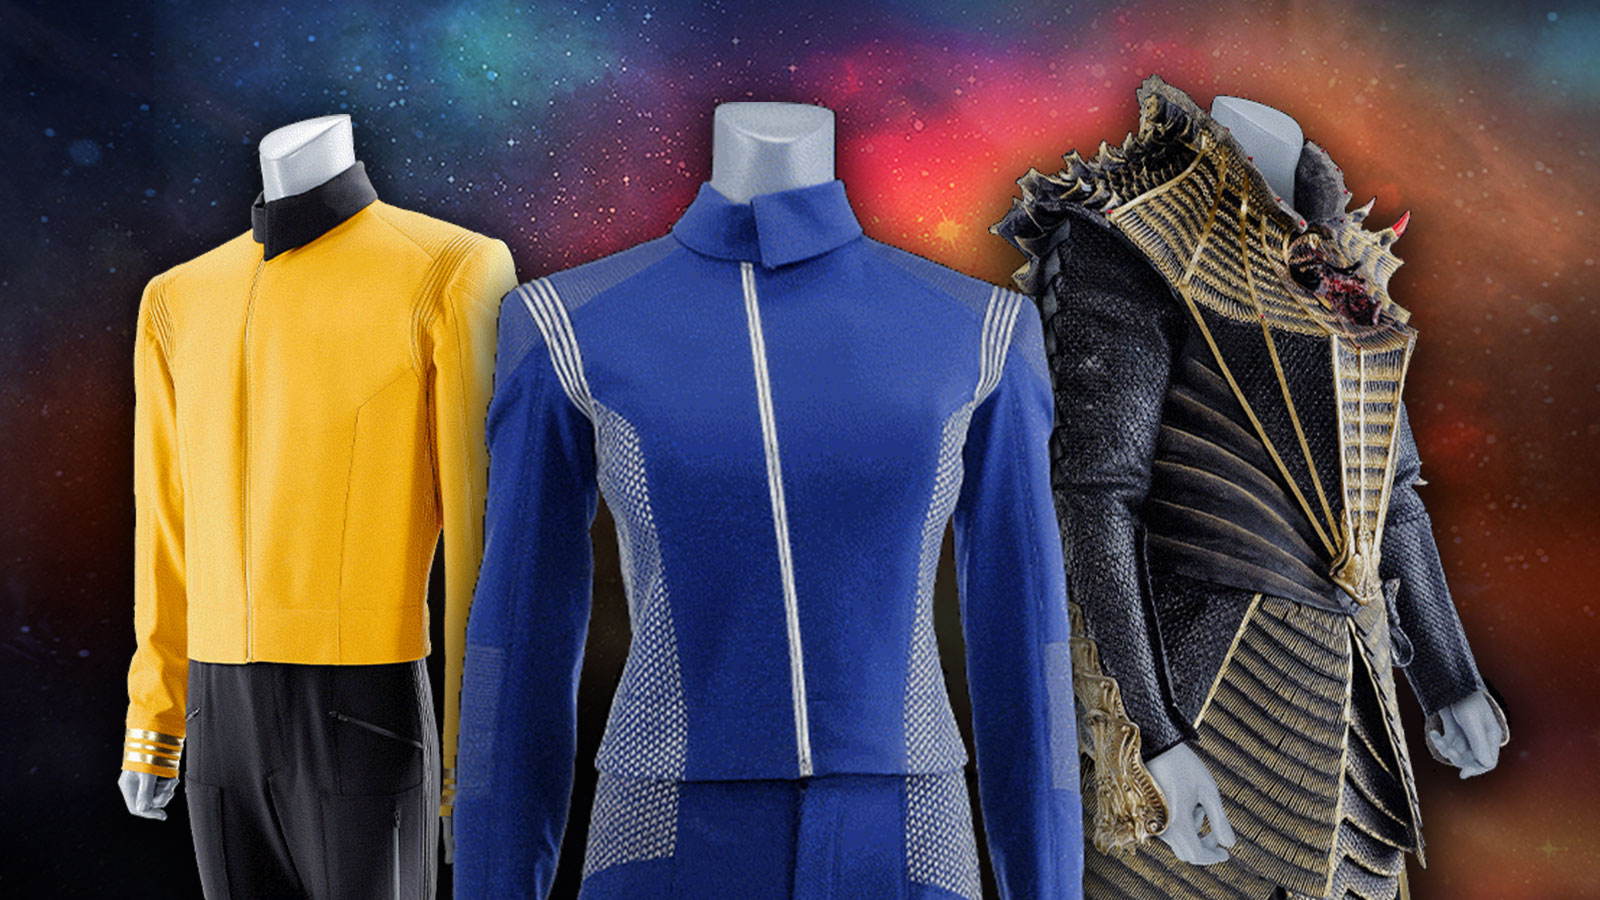 More Than 200 Star Trek: Discovery Costumes & Props Set For Auction In September